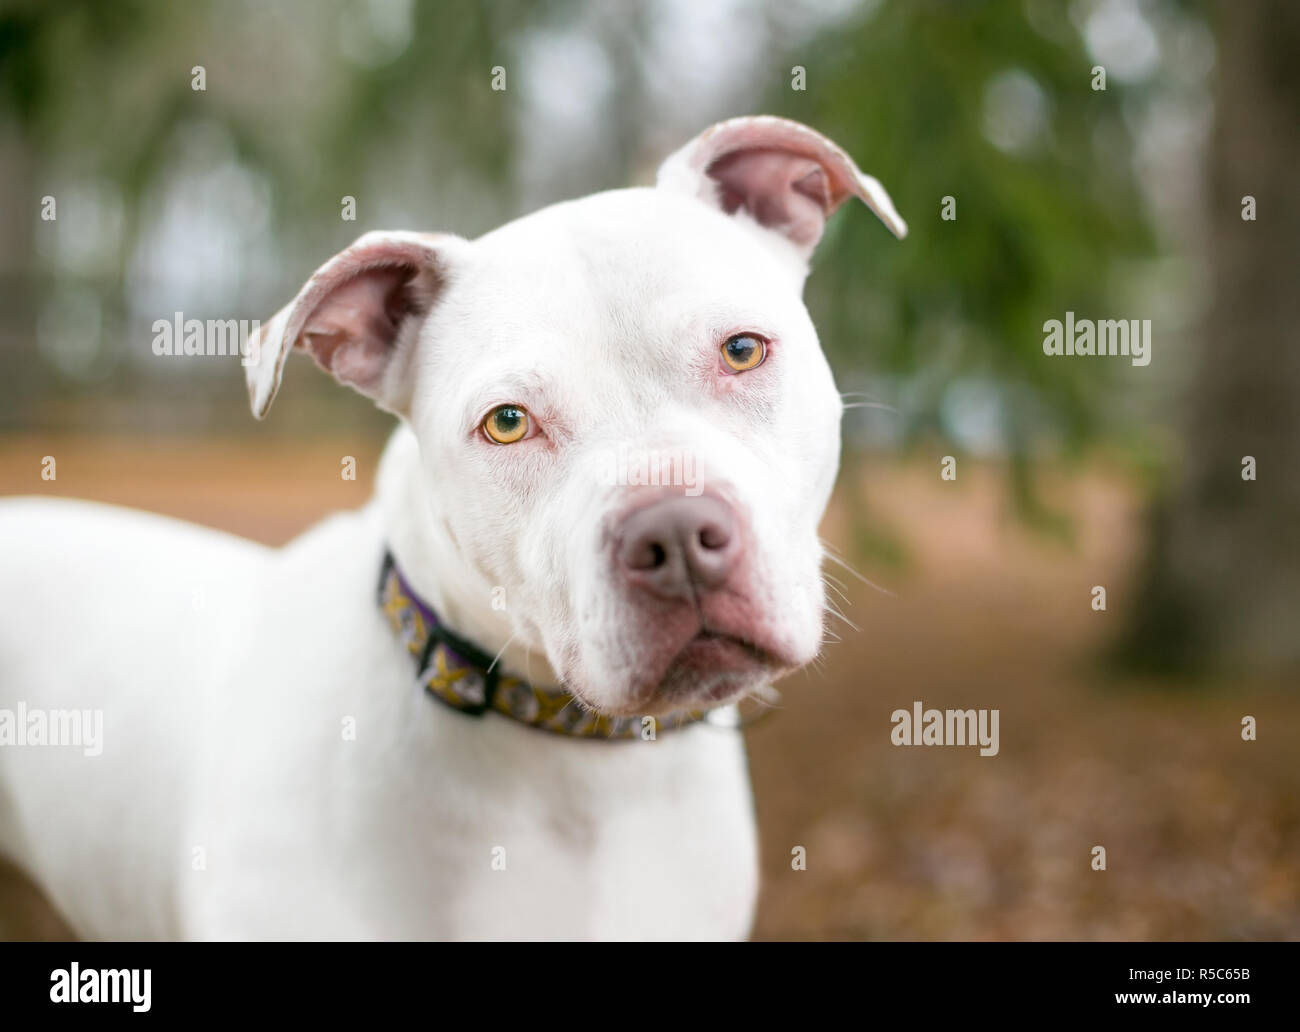 A white Pit Bull Terrier mixed breed dog outdoors looking at the camera with a head tilt - Stock Image